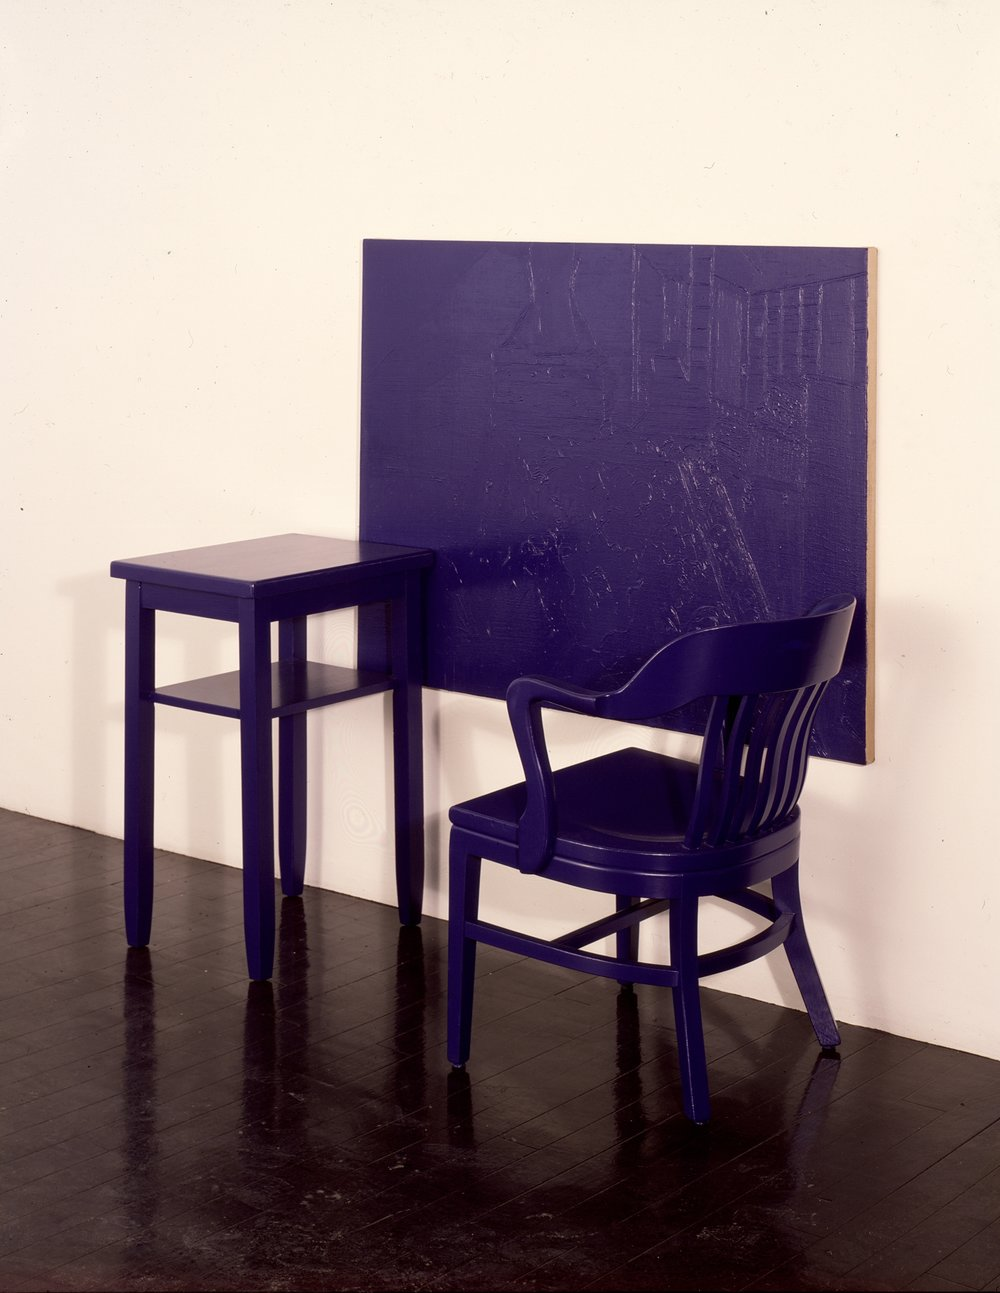 Cobalt Blue, Hue Deep - Stable; table, chair, oil on canvas, oil painting on wall with resin on glass overlay; dimensions variable